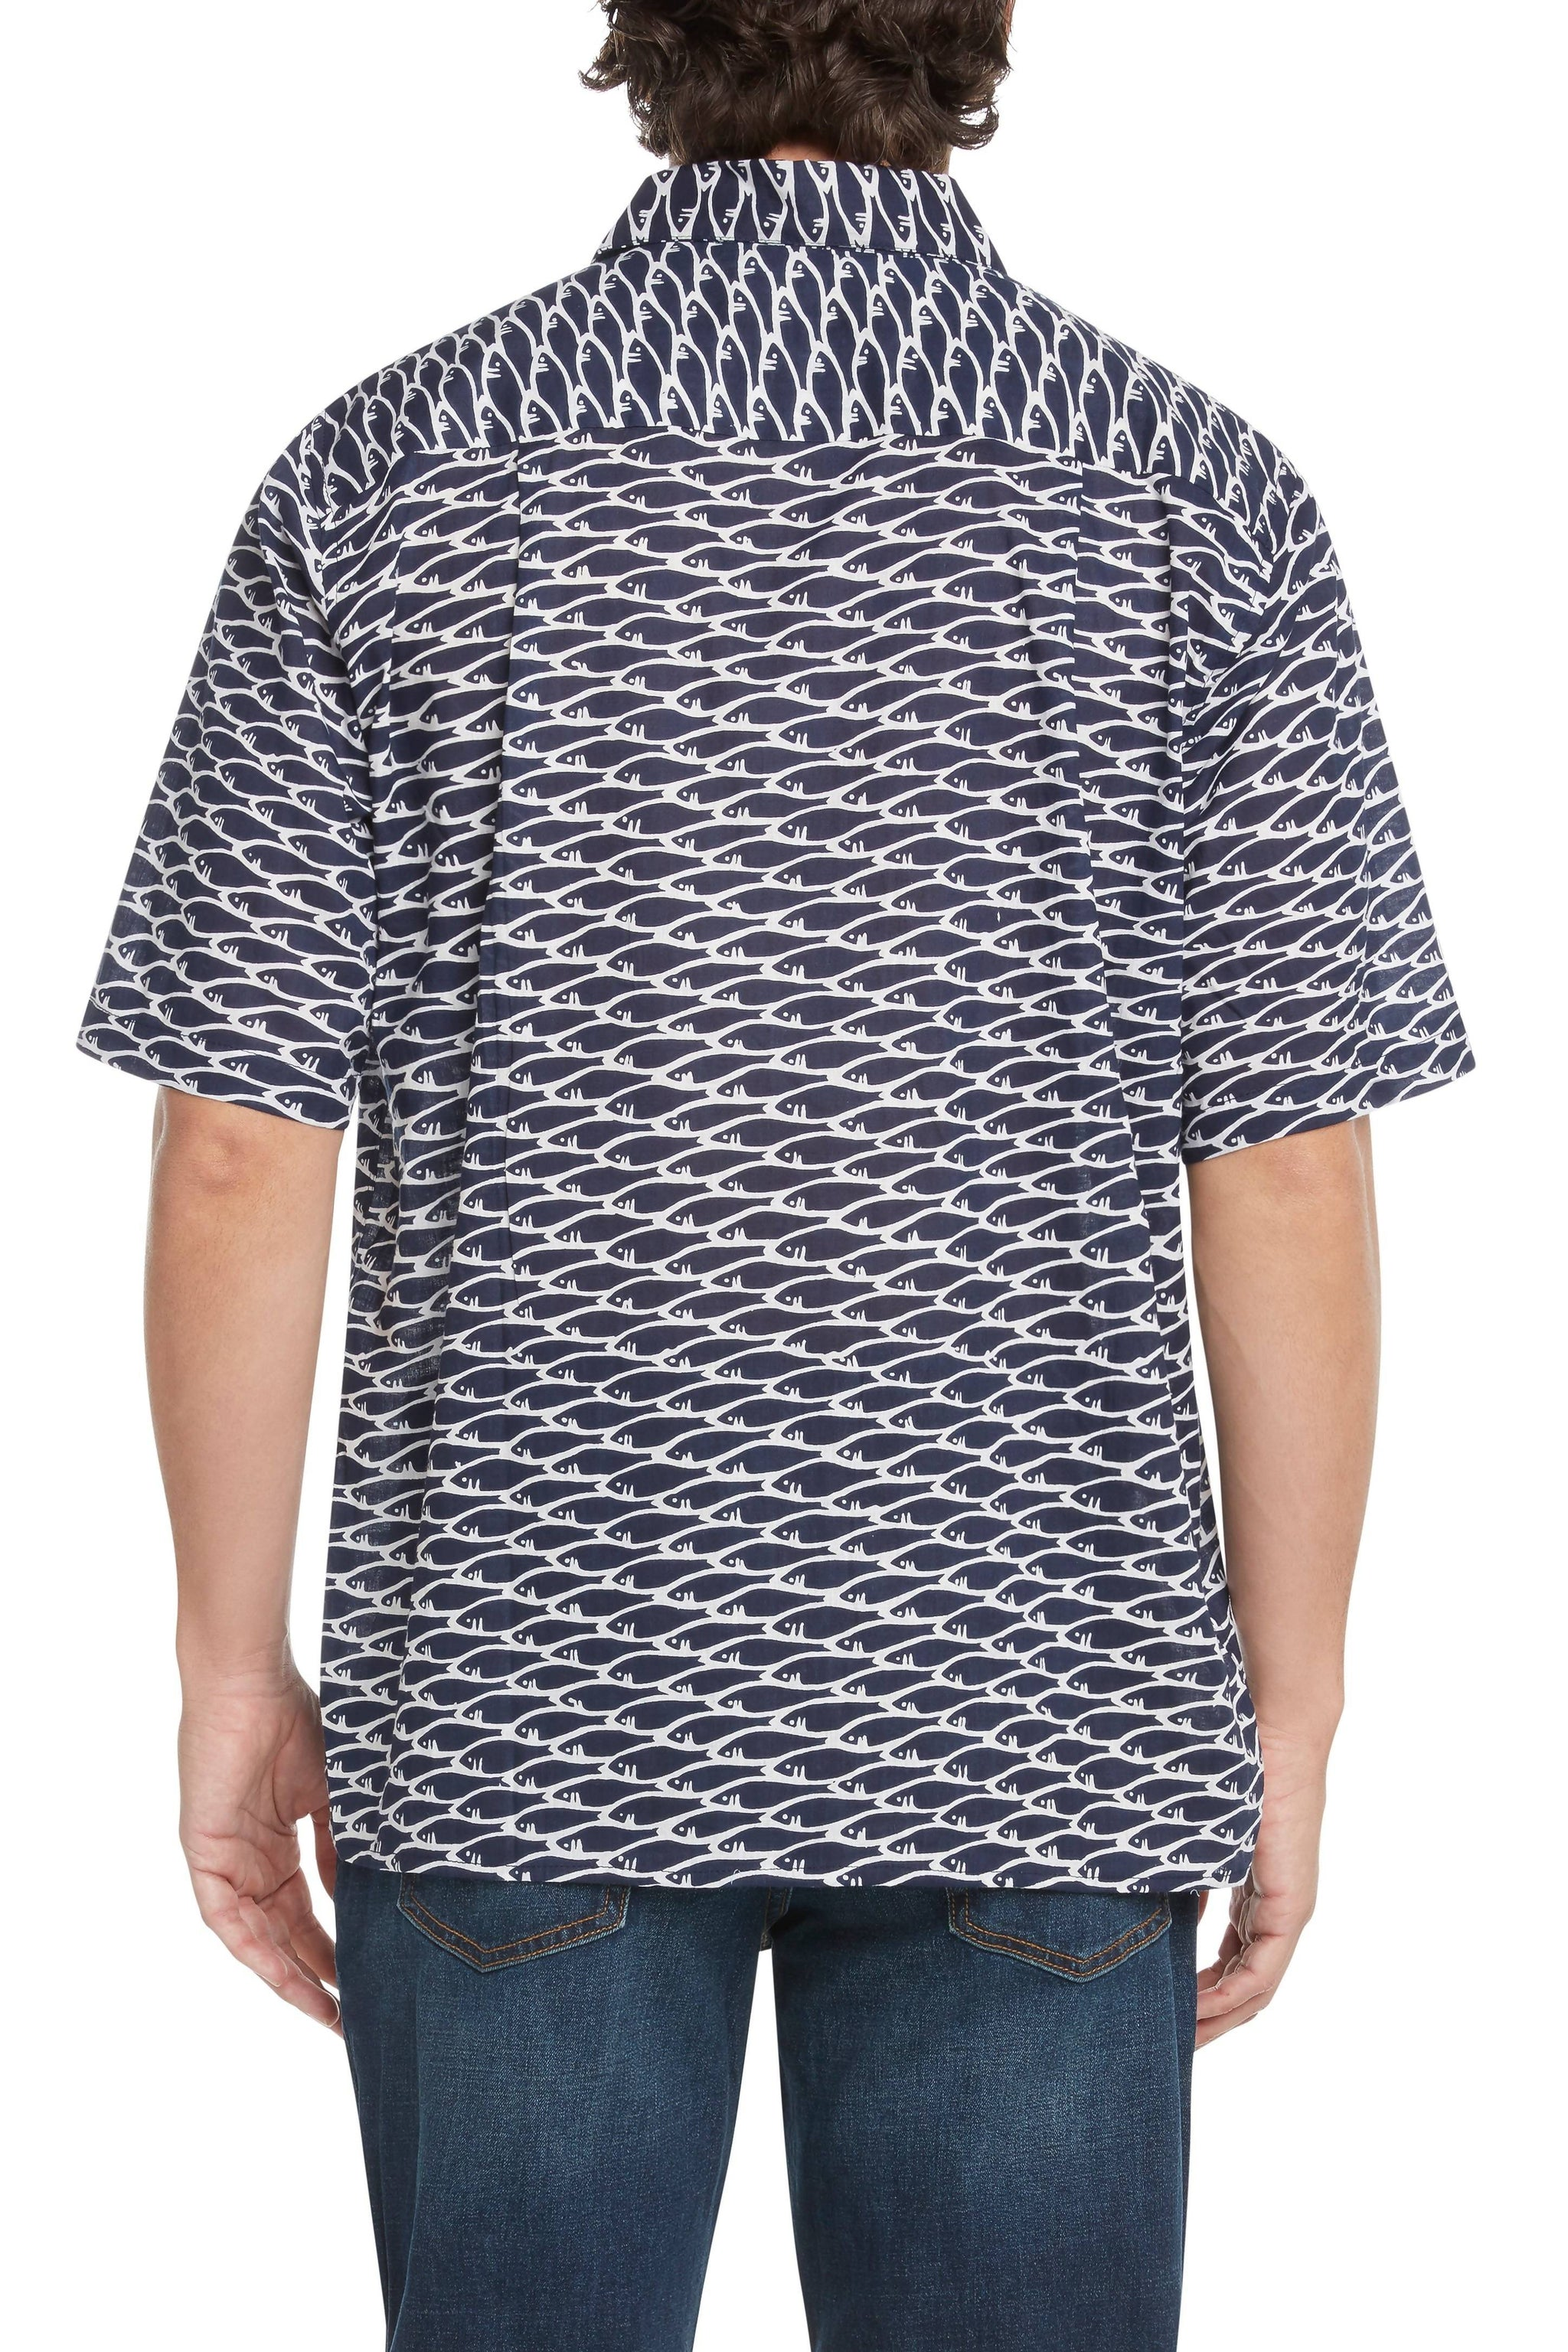 Men's Navy and White Fish Short-Sleeved Button Down Shirt